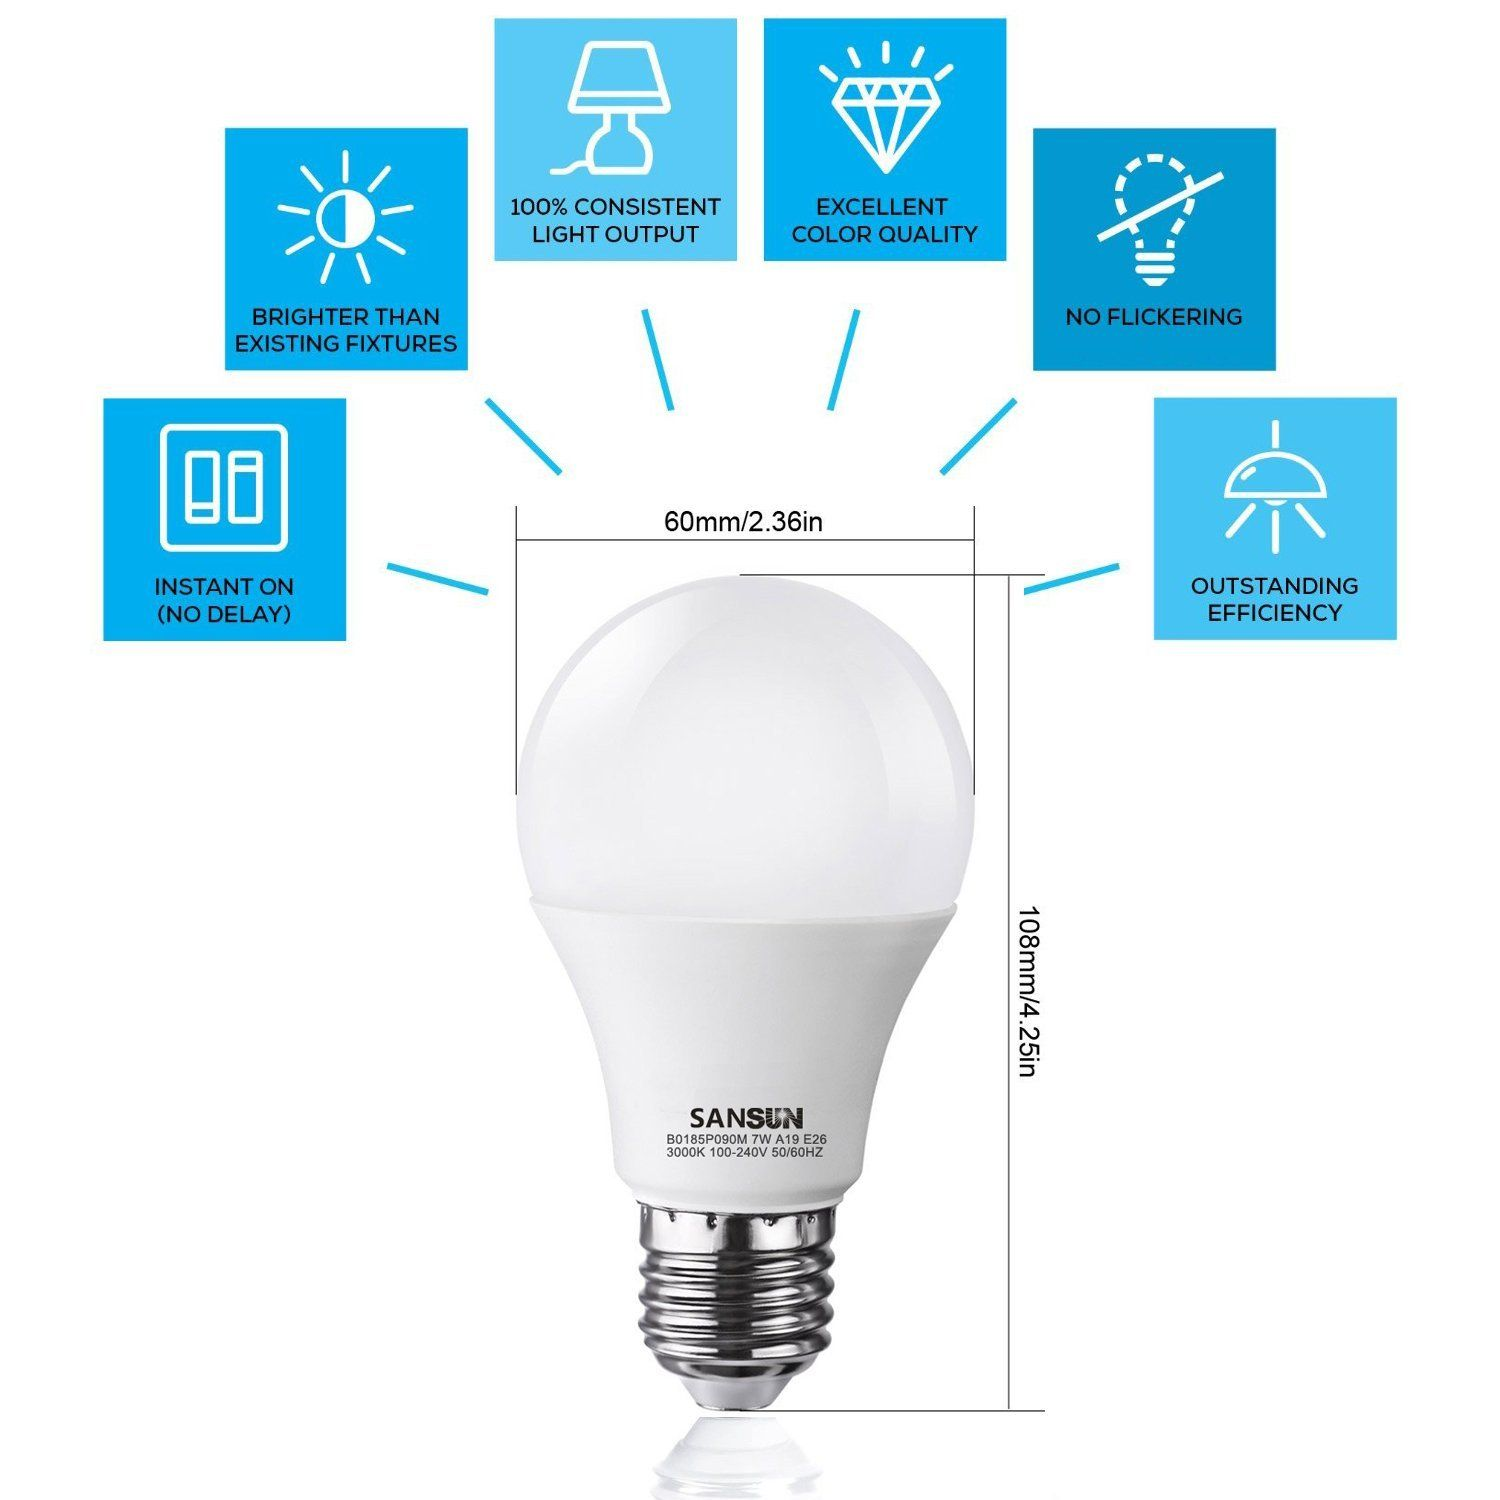 A19 Led Light Bulbs 60 Watt Equivalent Sansun 3000k Soft White E26 Socket Ul Listed Led Globe Bulbs Pack Of 6 Led Light Bulbs Globe Bulbs Light Bulbs